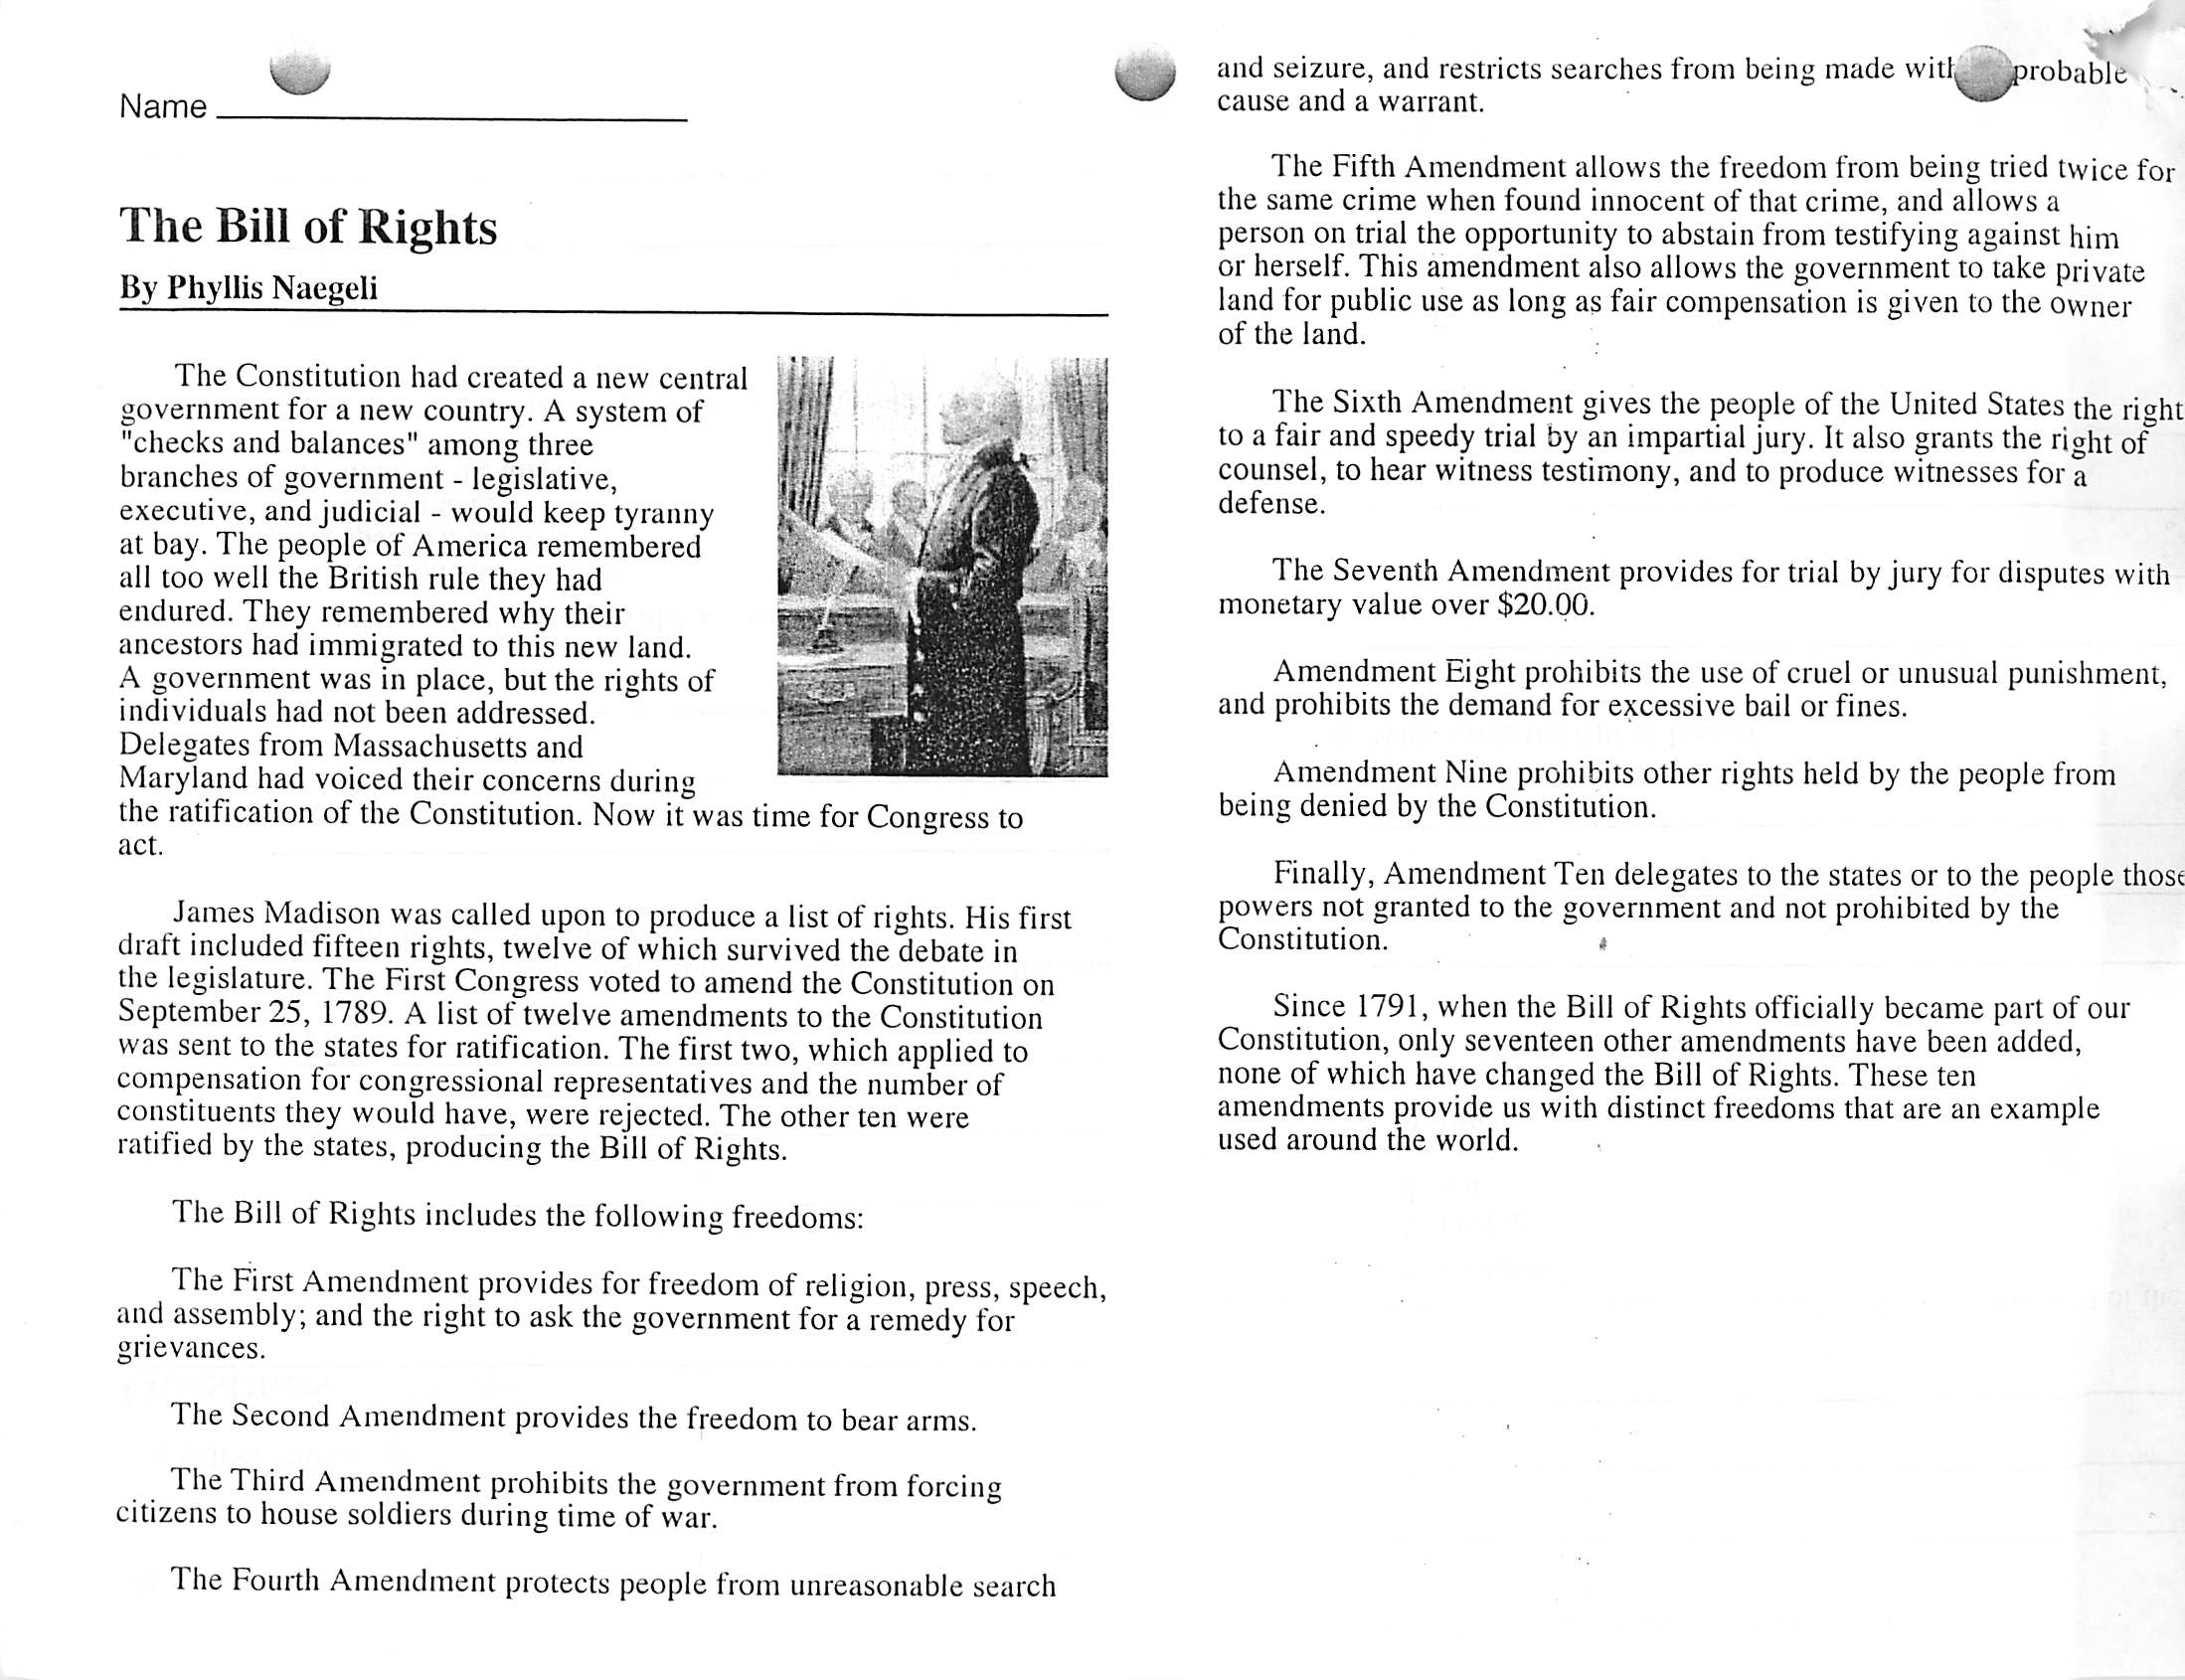 essay on the bill of rights spm essay on love story essay on bill  essay about the bill of rights get a custom high quality essay here